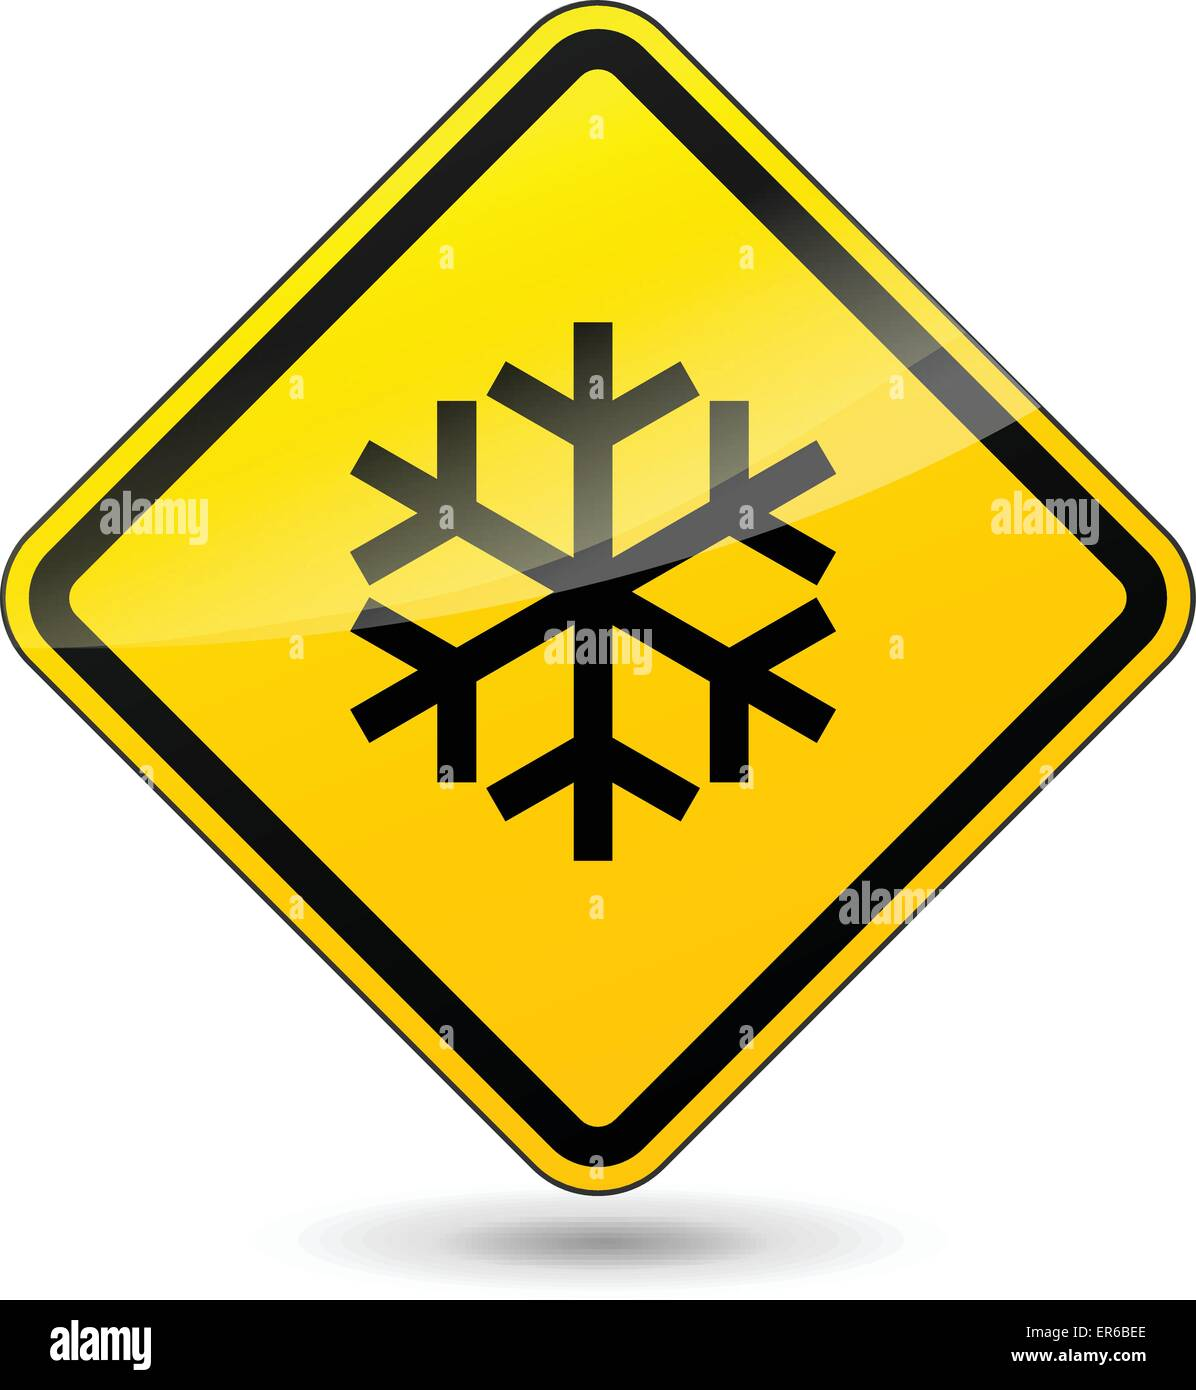 Vector illustration of ice yellow sign on white background - Stock Image